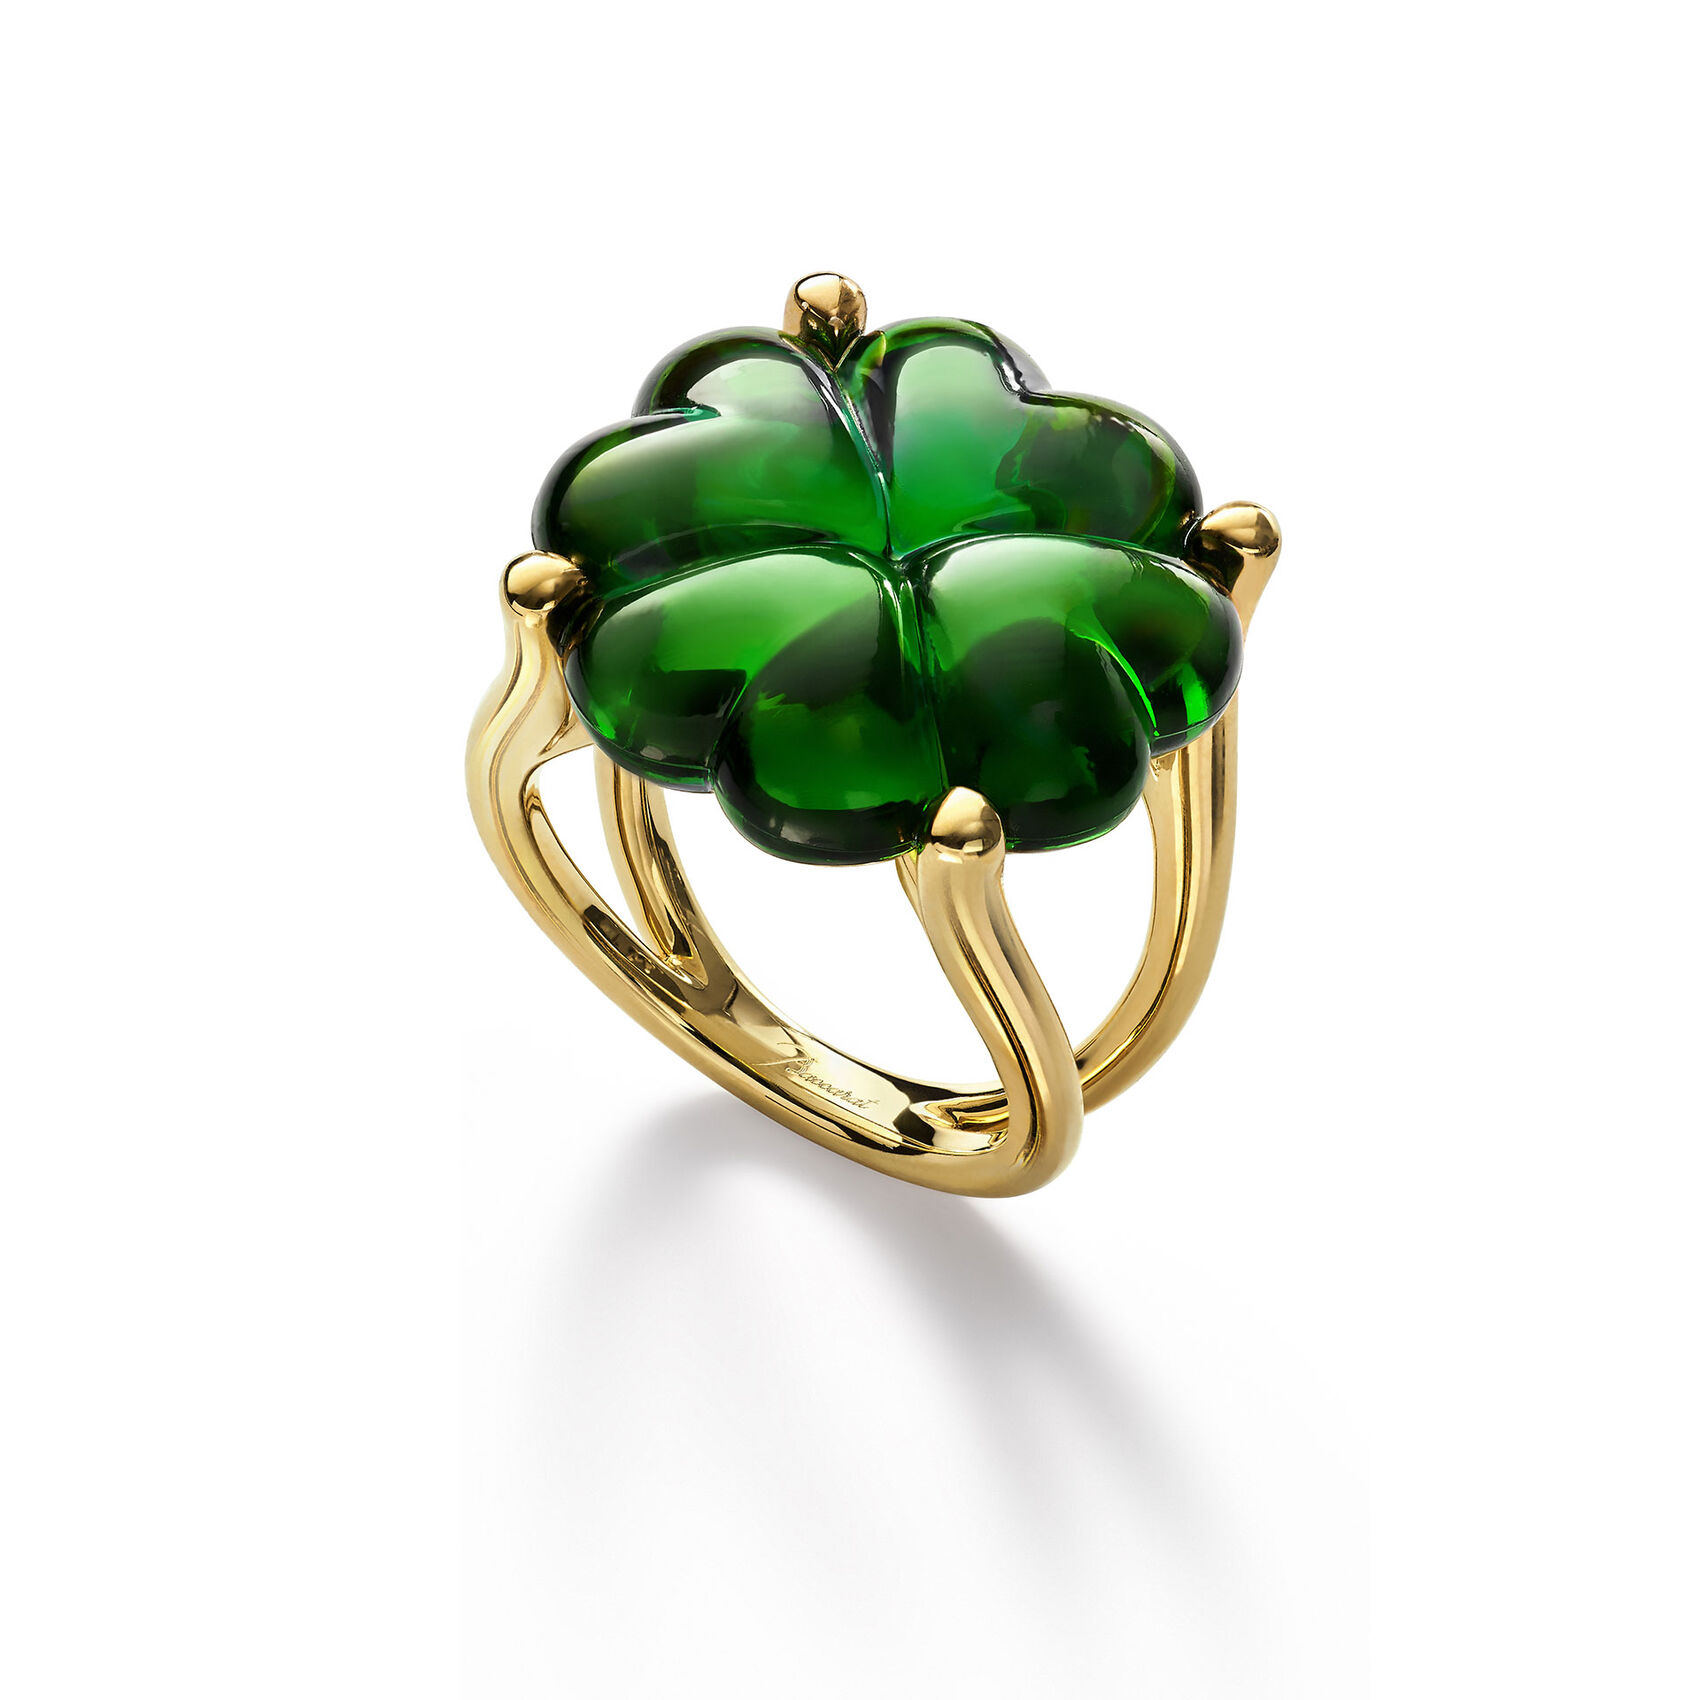 TRÈFLE ANELLO BACCARAT RING SCONTO DISCOUNT